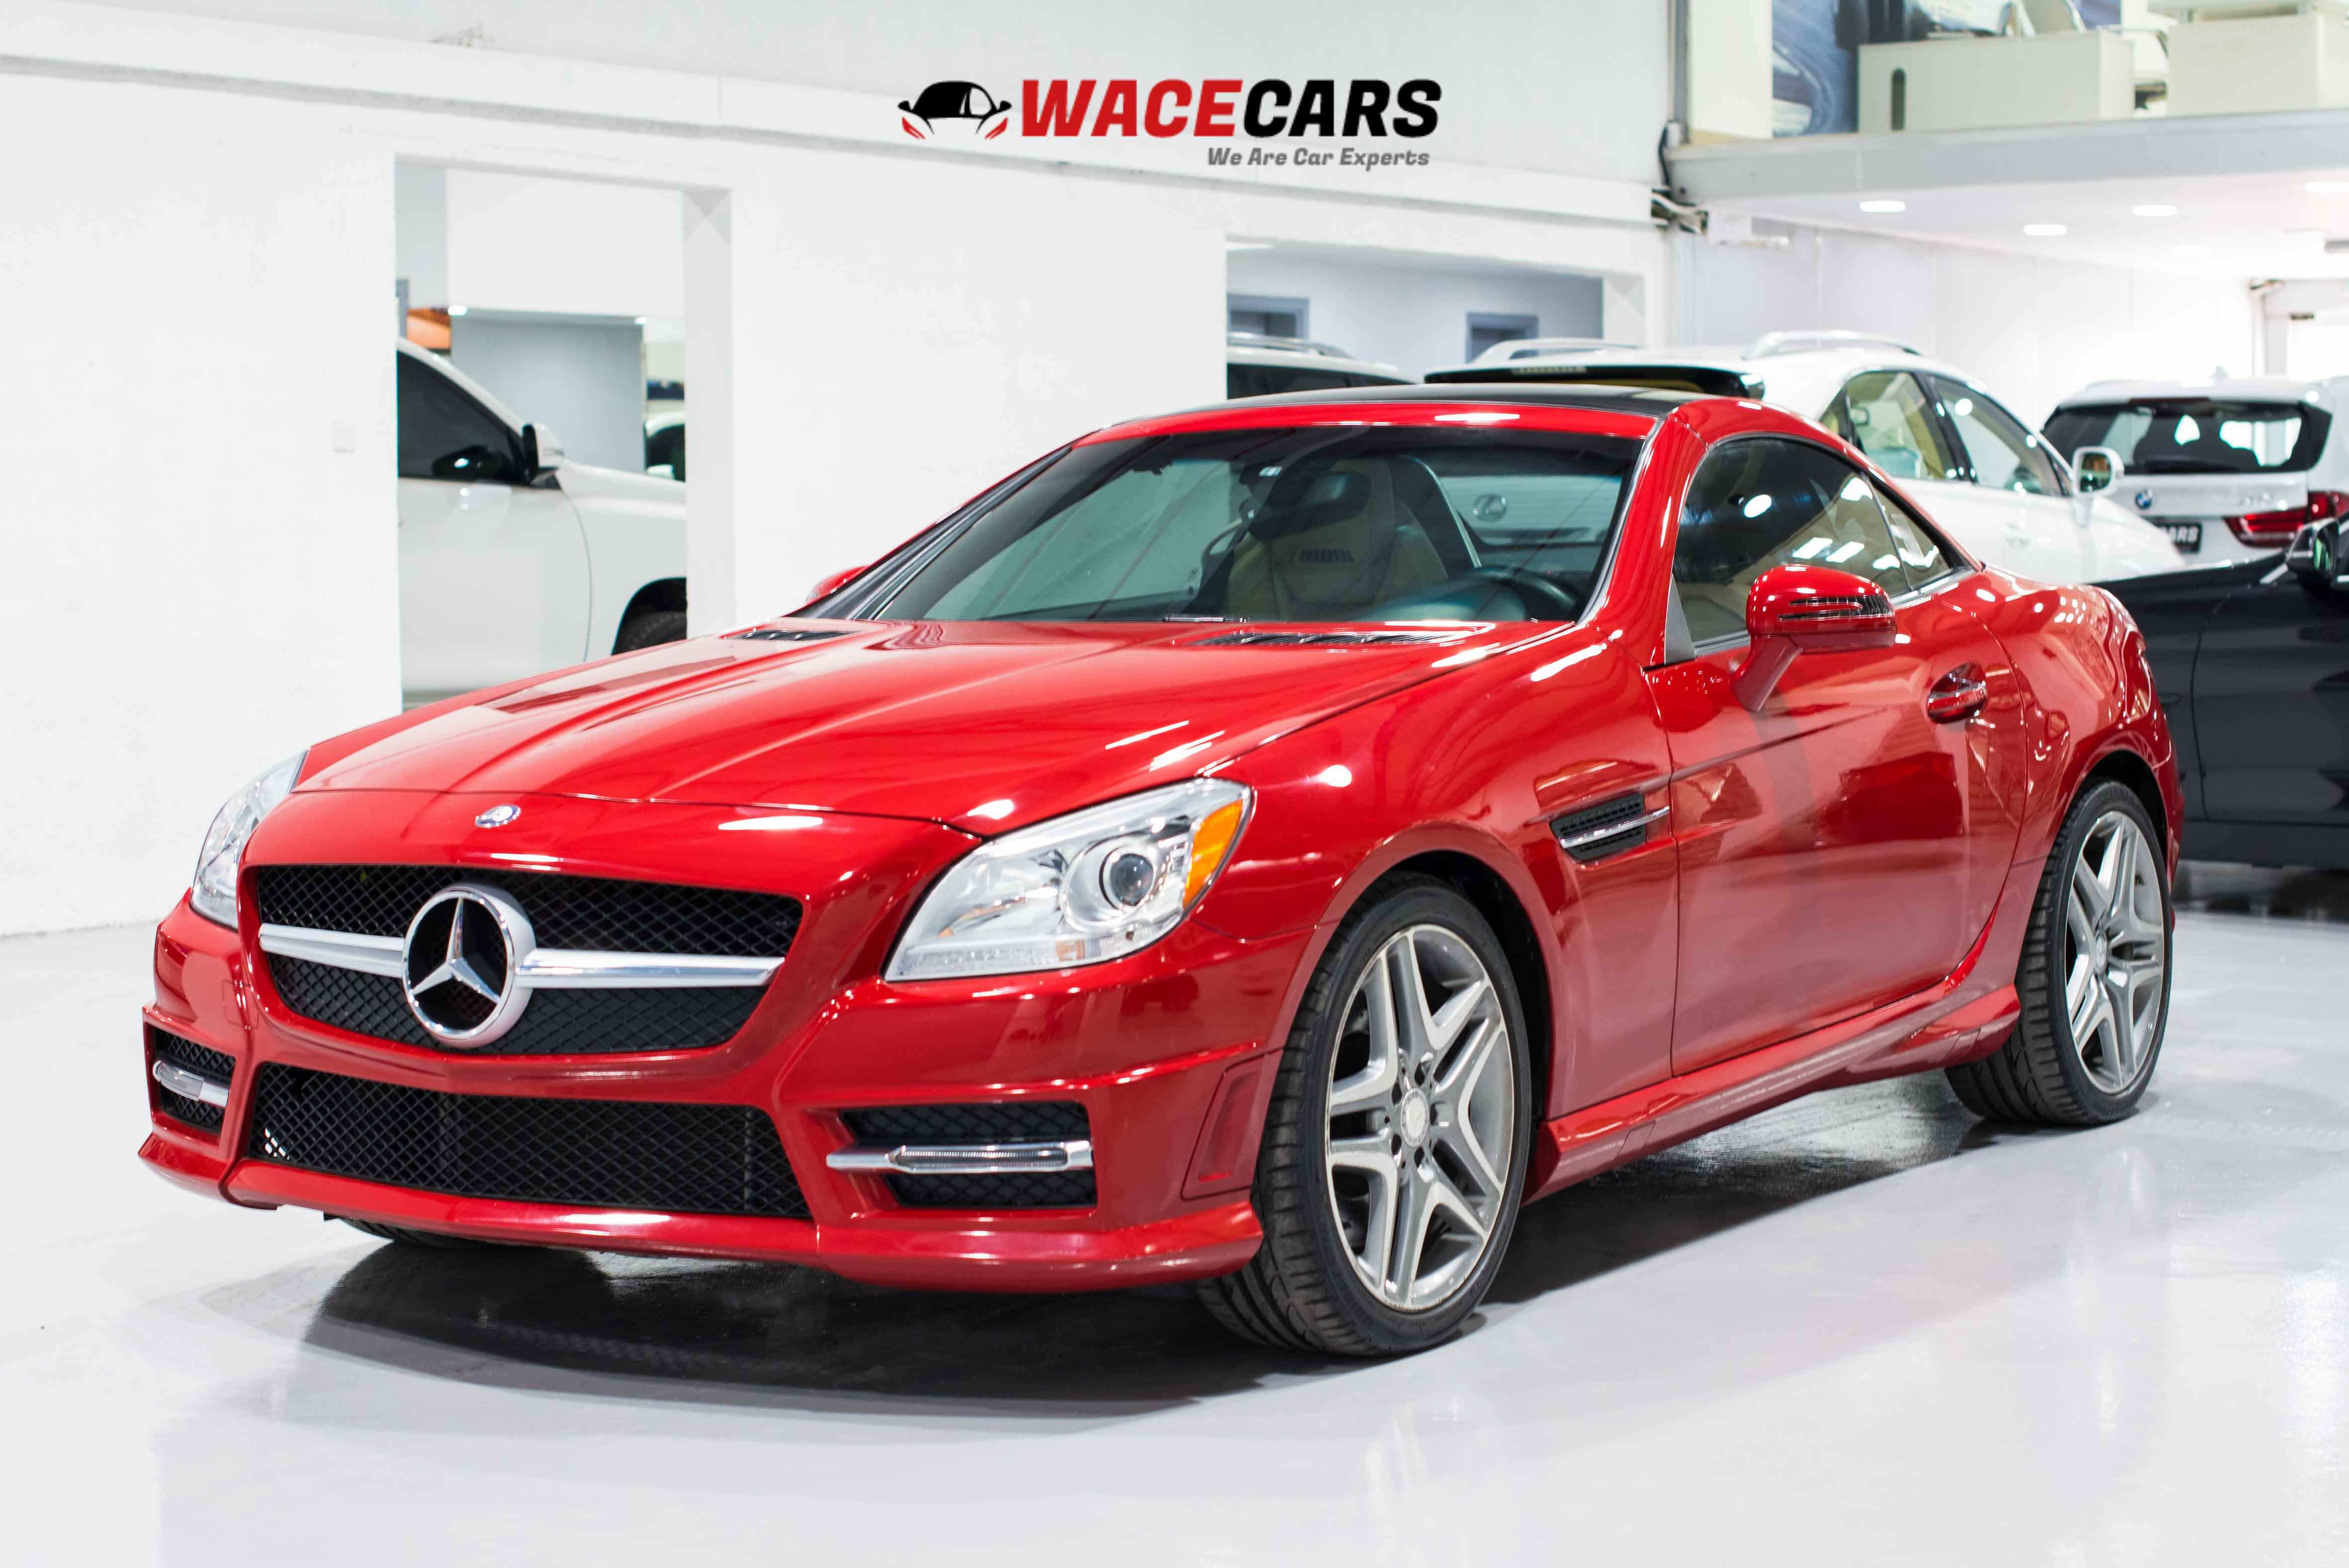 Used Mercedes-Benz SLK 2015 for sale in Dubai